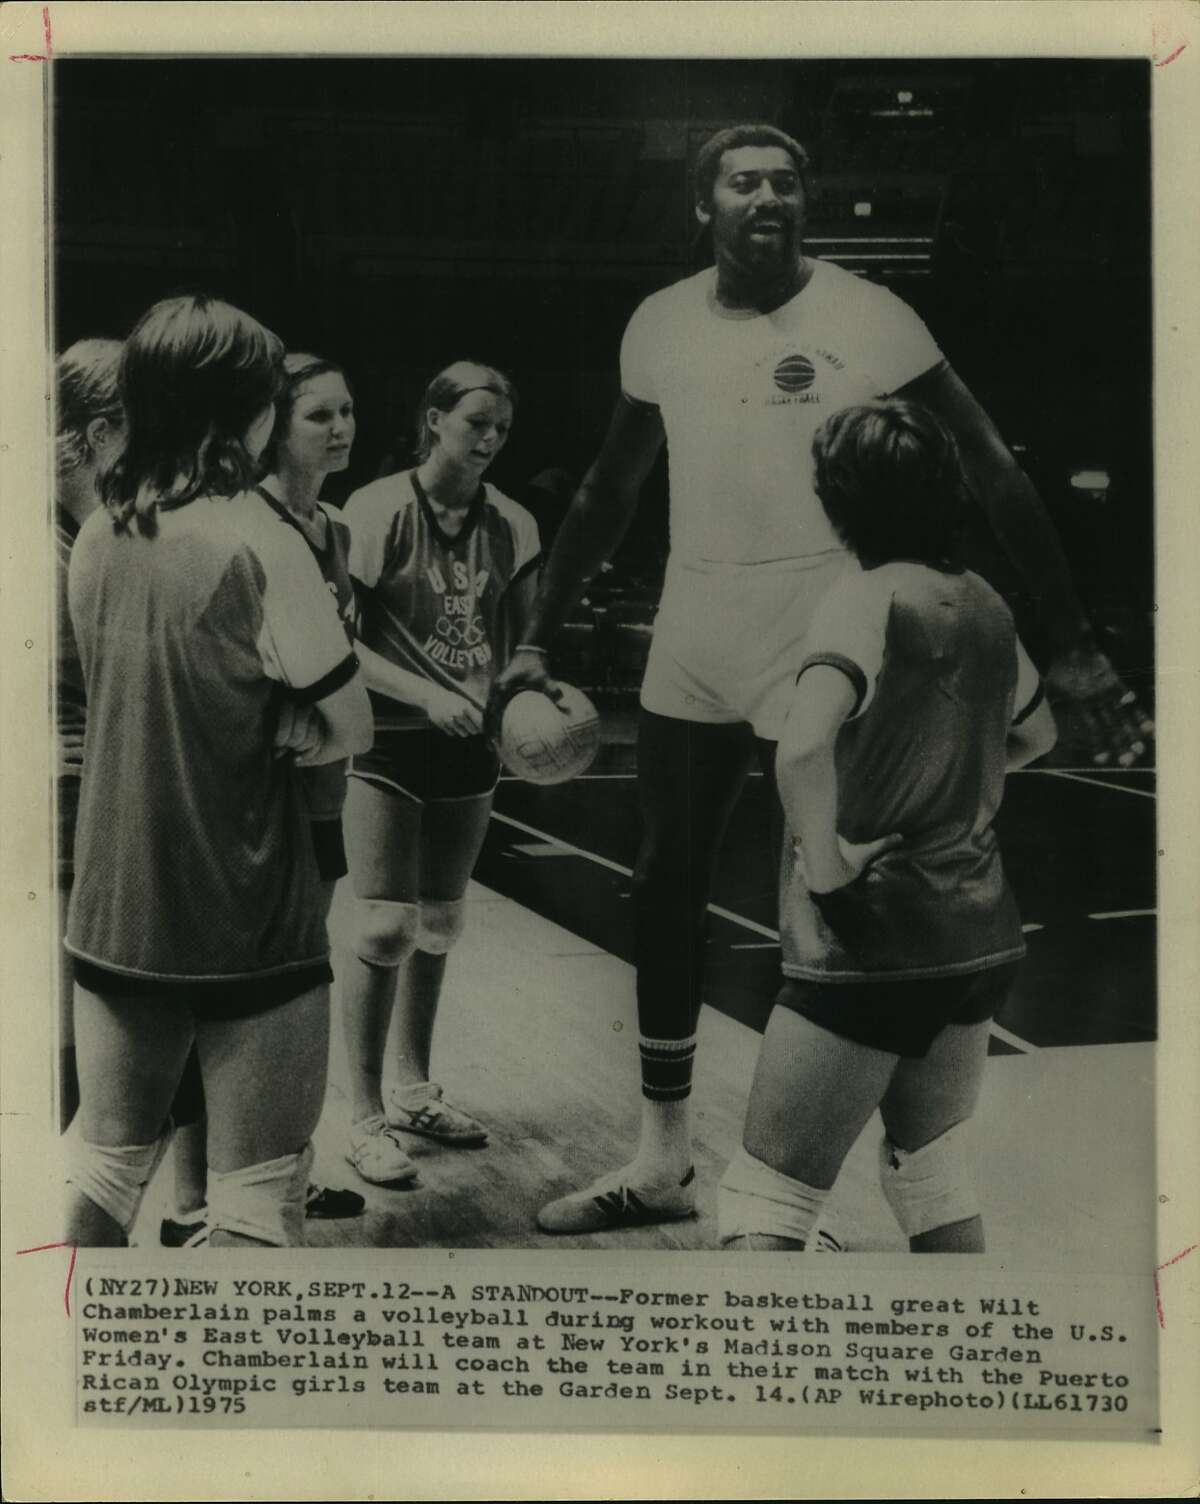 A Standout--former basketball great Wilt Chamberlain palms a volleyball during work out with members of the US Women's East Volleyball team at New York's Madison Square Garden Friday. Chamberlain will coach the team in their match with Puerto Rican Olympic girls team at the garden September 14.